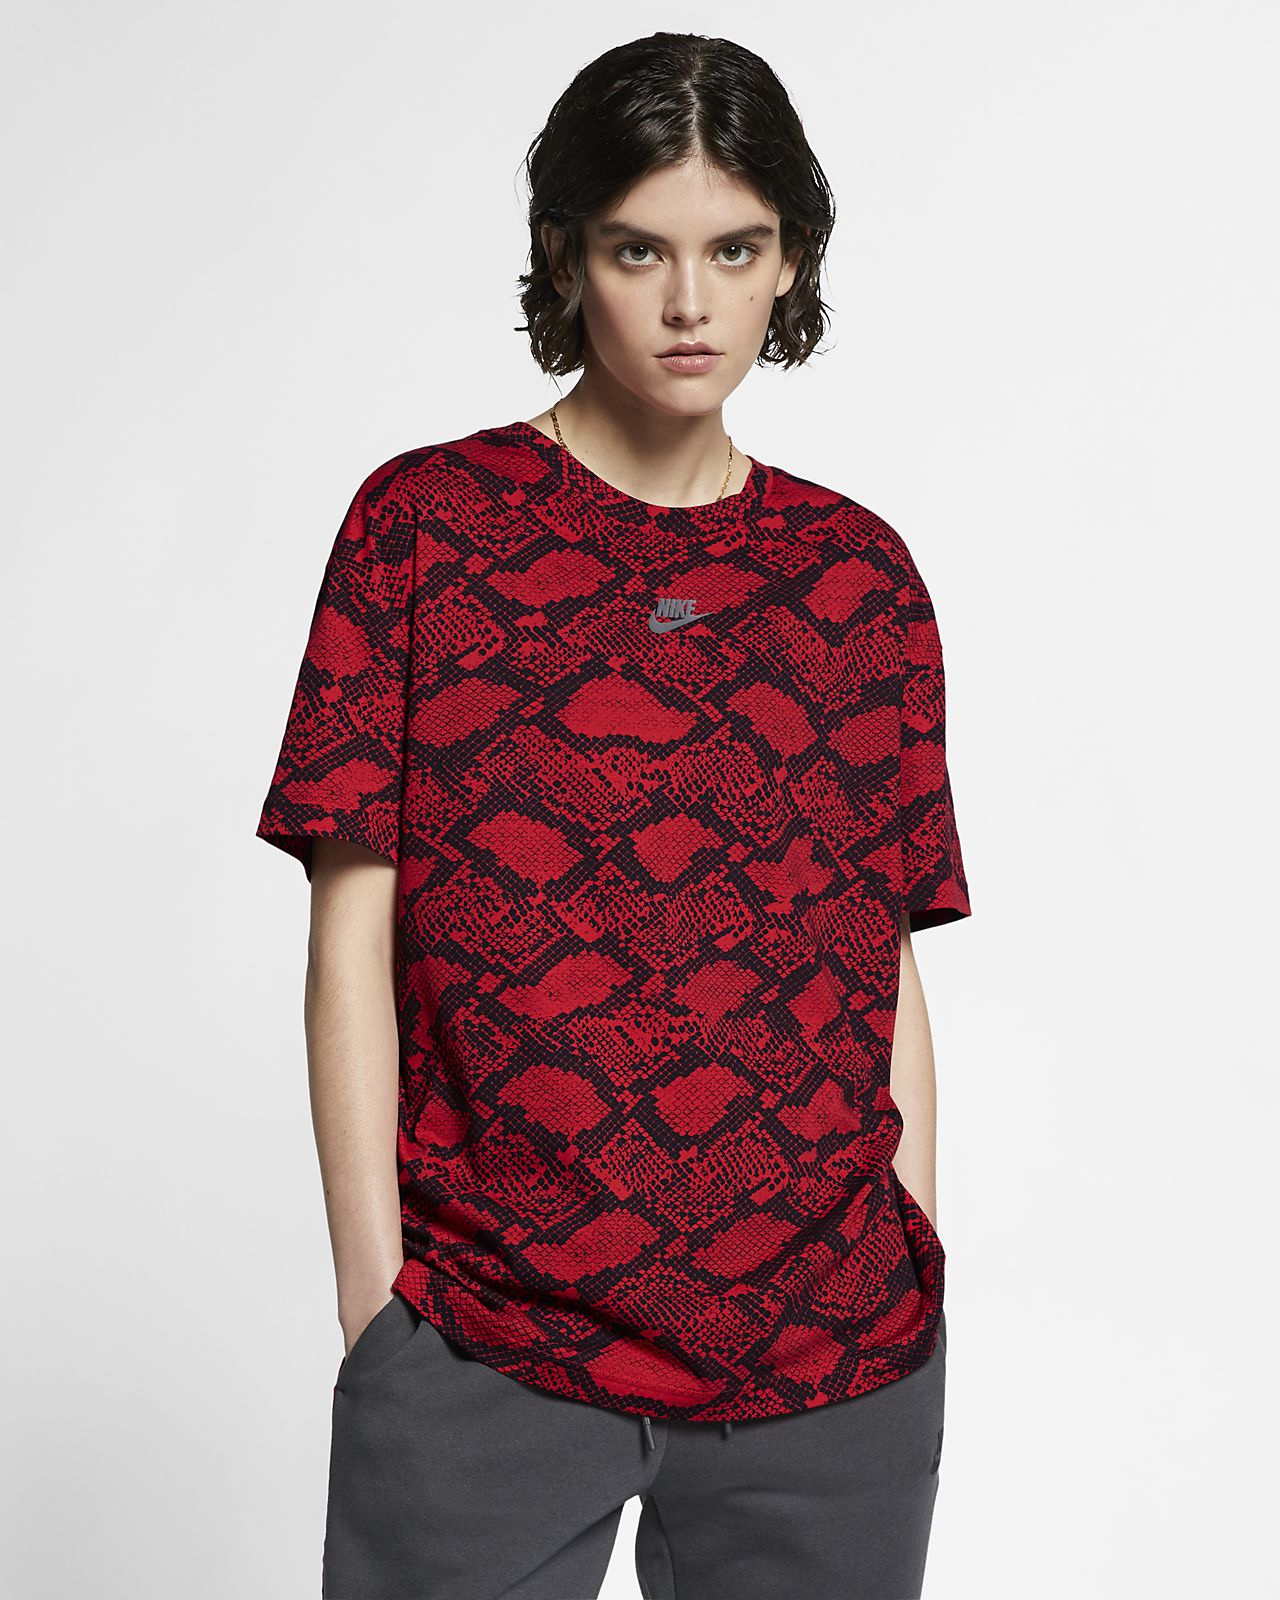 Nike Sportswear Women's Animal T-Shirt